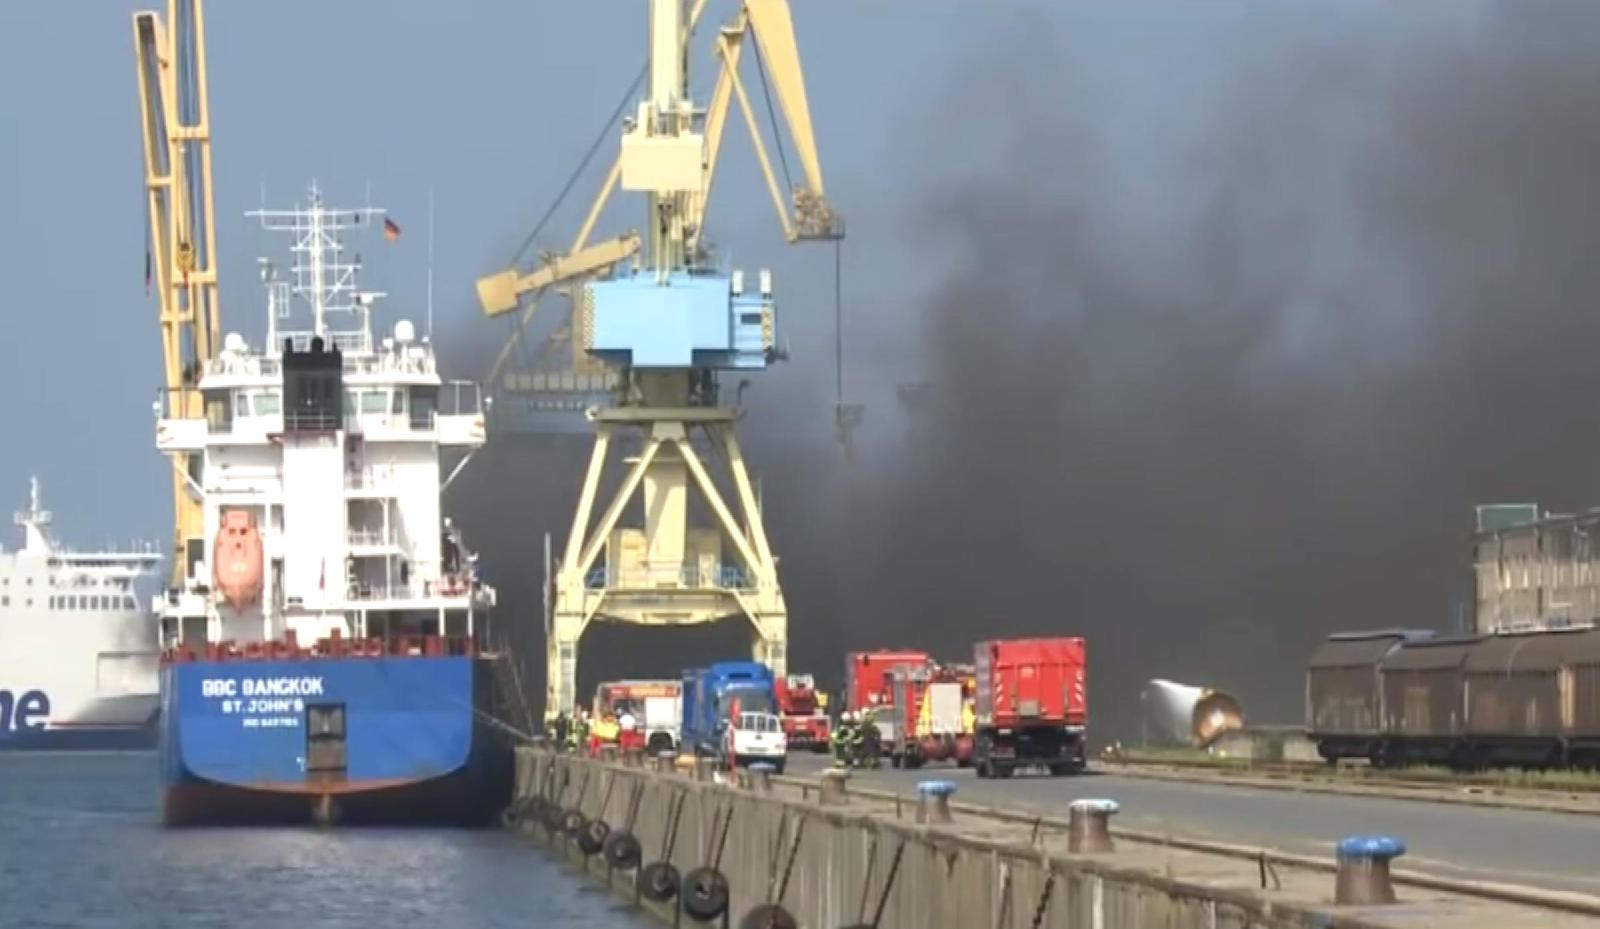 "Cargo fire onboard ""BBC Bangkok"" in the port of Rostock"